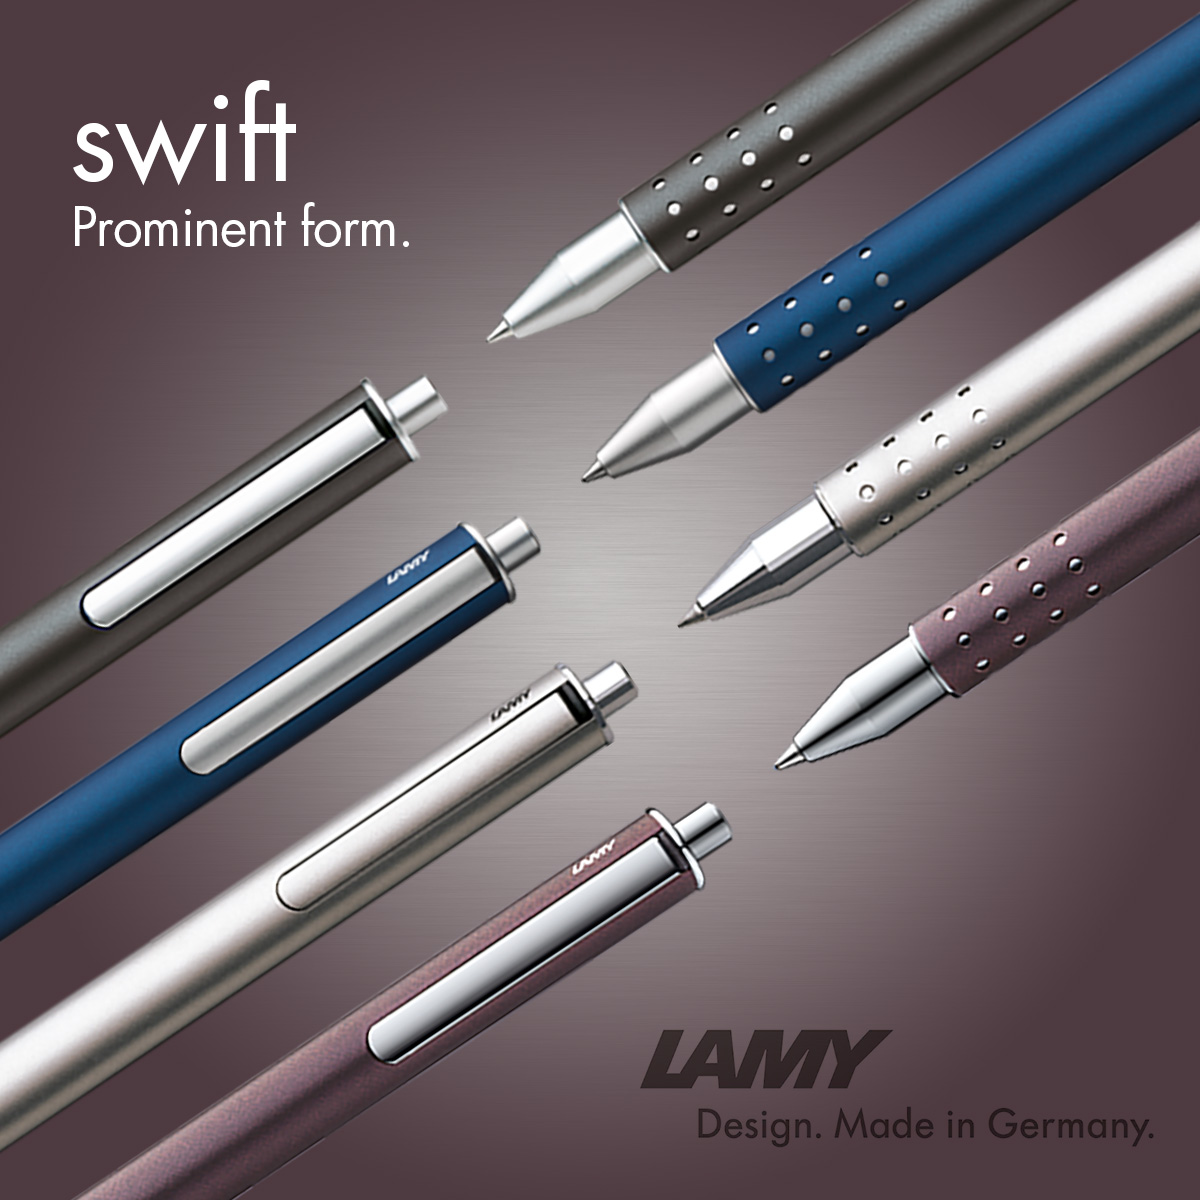 Lamy Swift.jpg